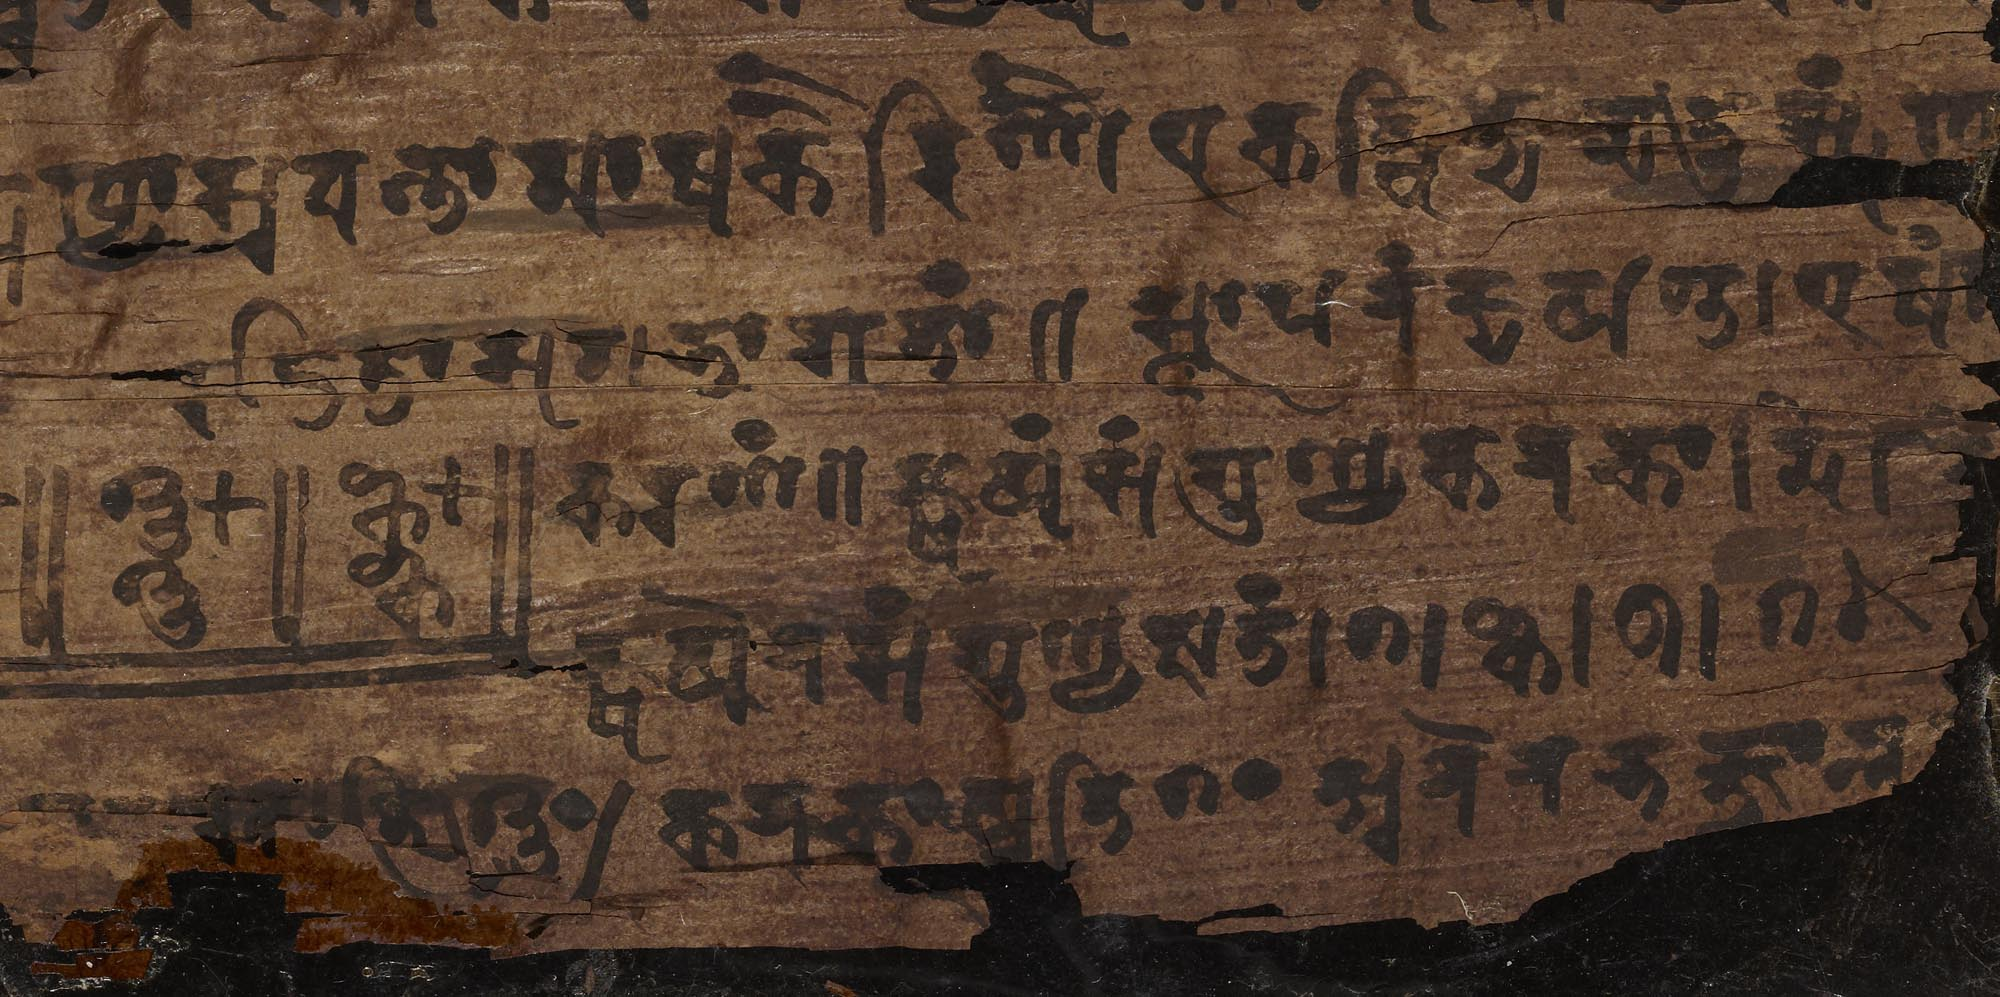 a close up of a manuscript with sanskrit wiring on nit